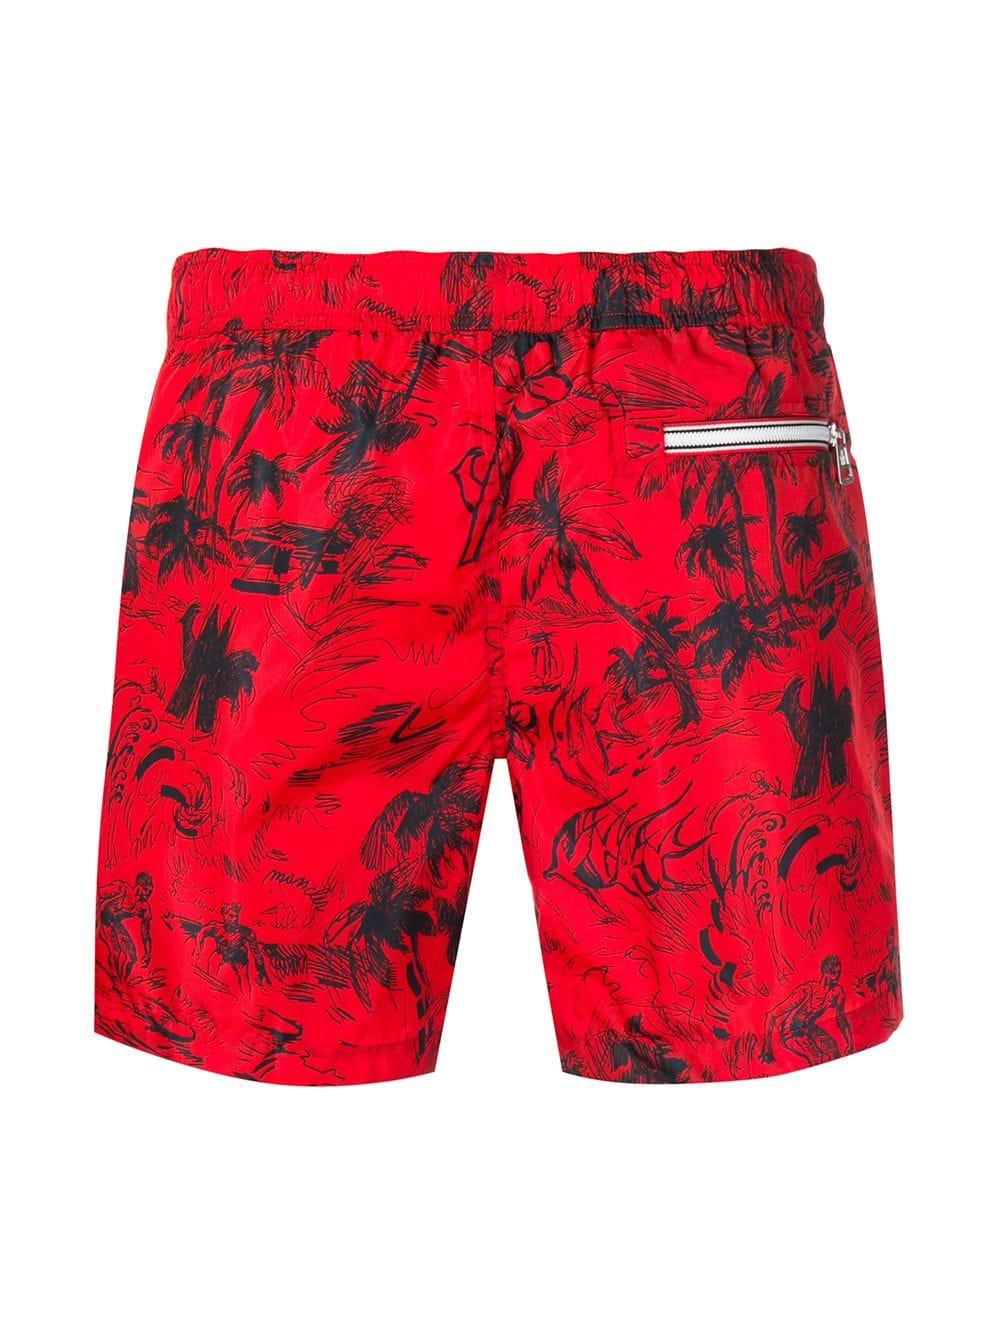 3c92a58aa Moncler Scribble Tropical Print Swim Shorts in Red for Men - Lyst